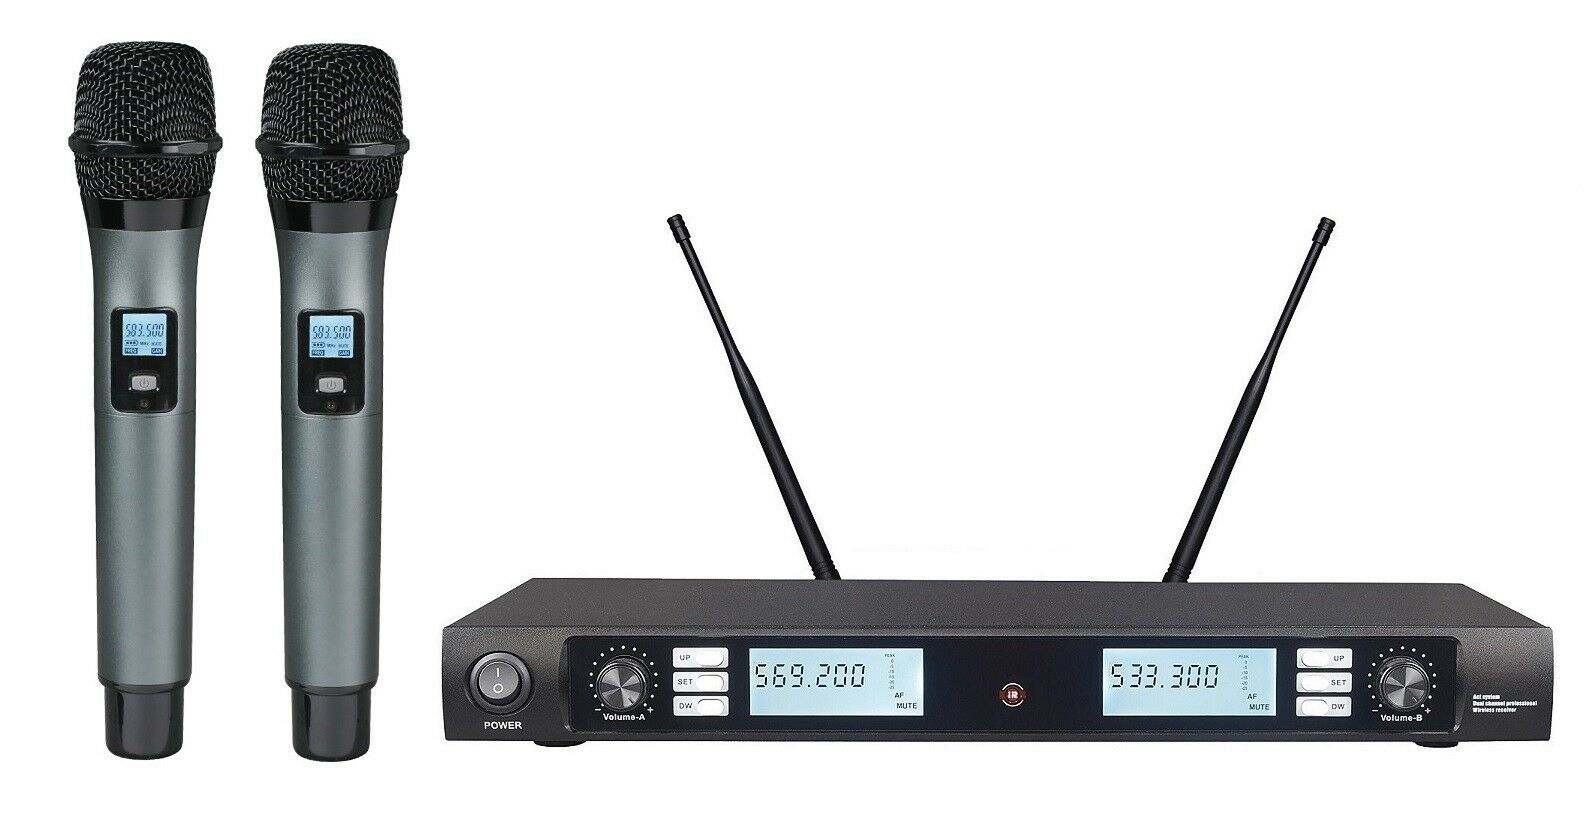 Wireless Microphone System UHF Professional Dual Cordless mic Set Karaoke Vocal